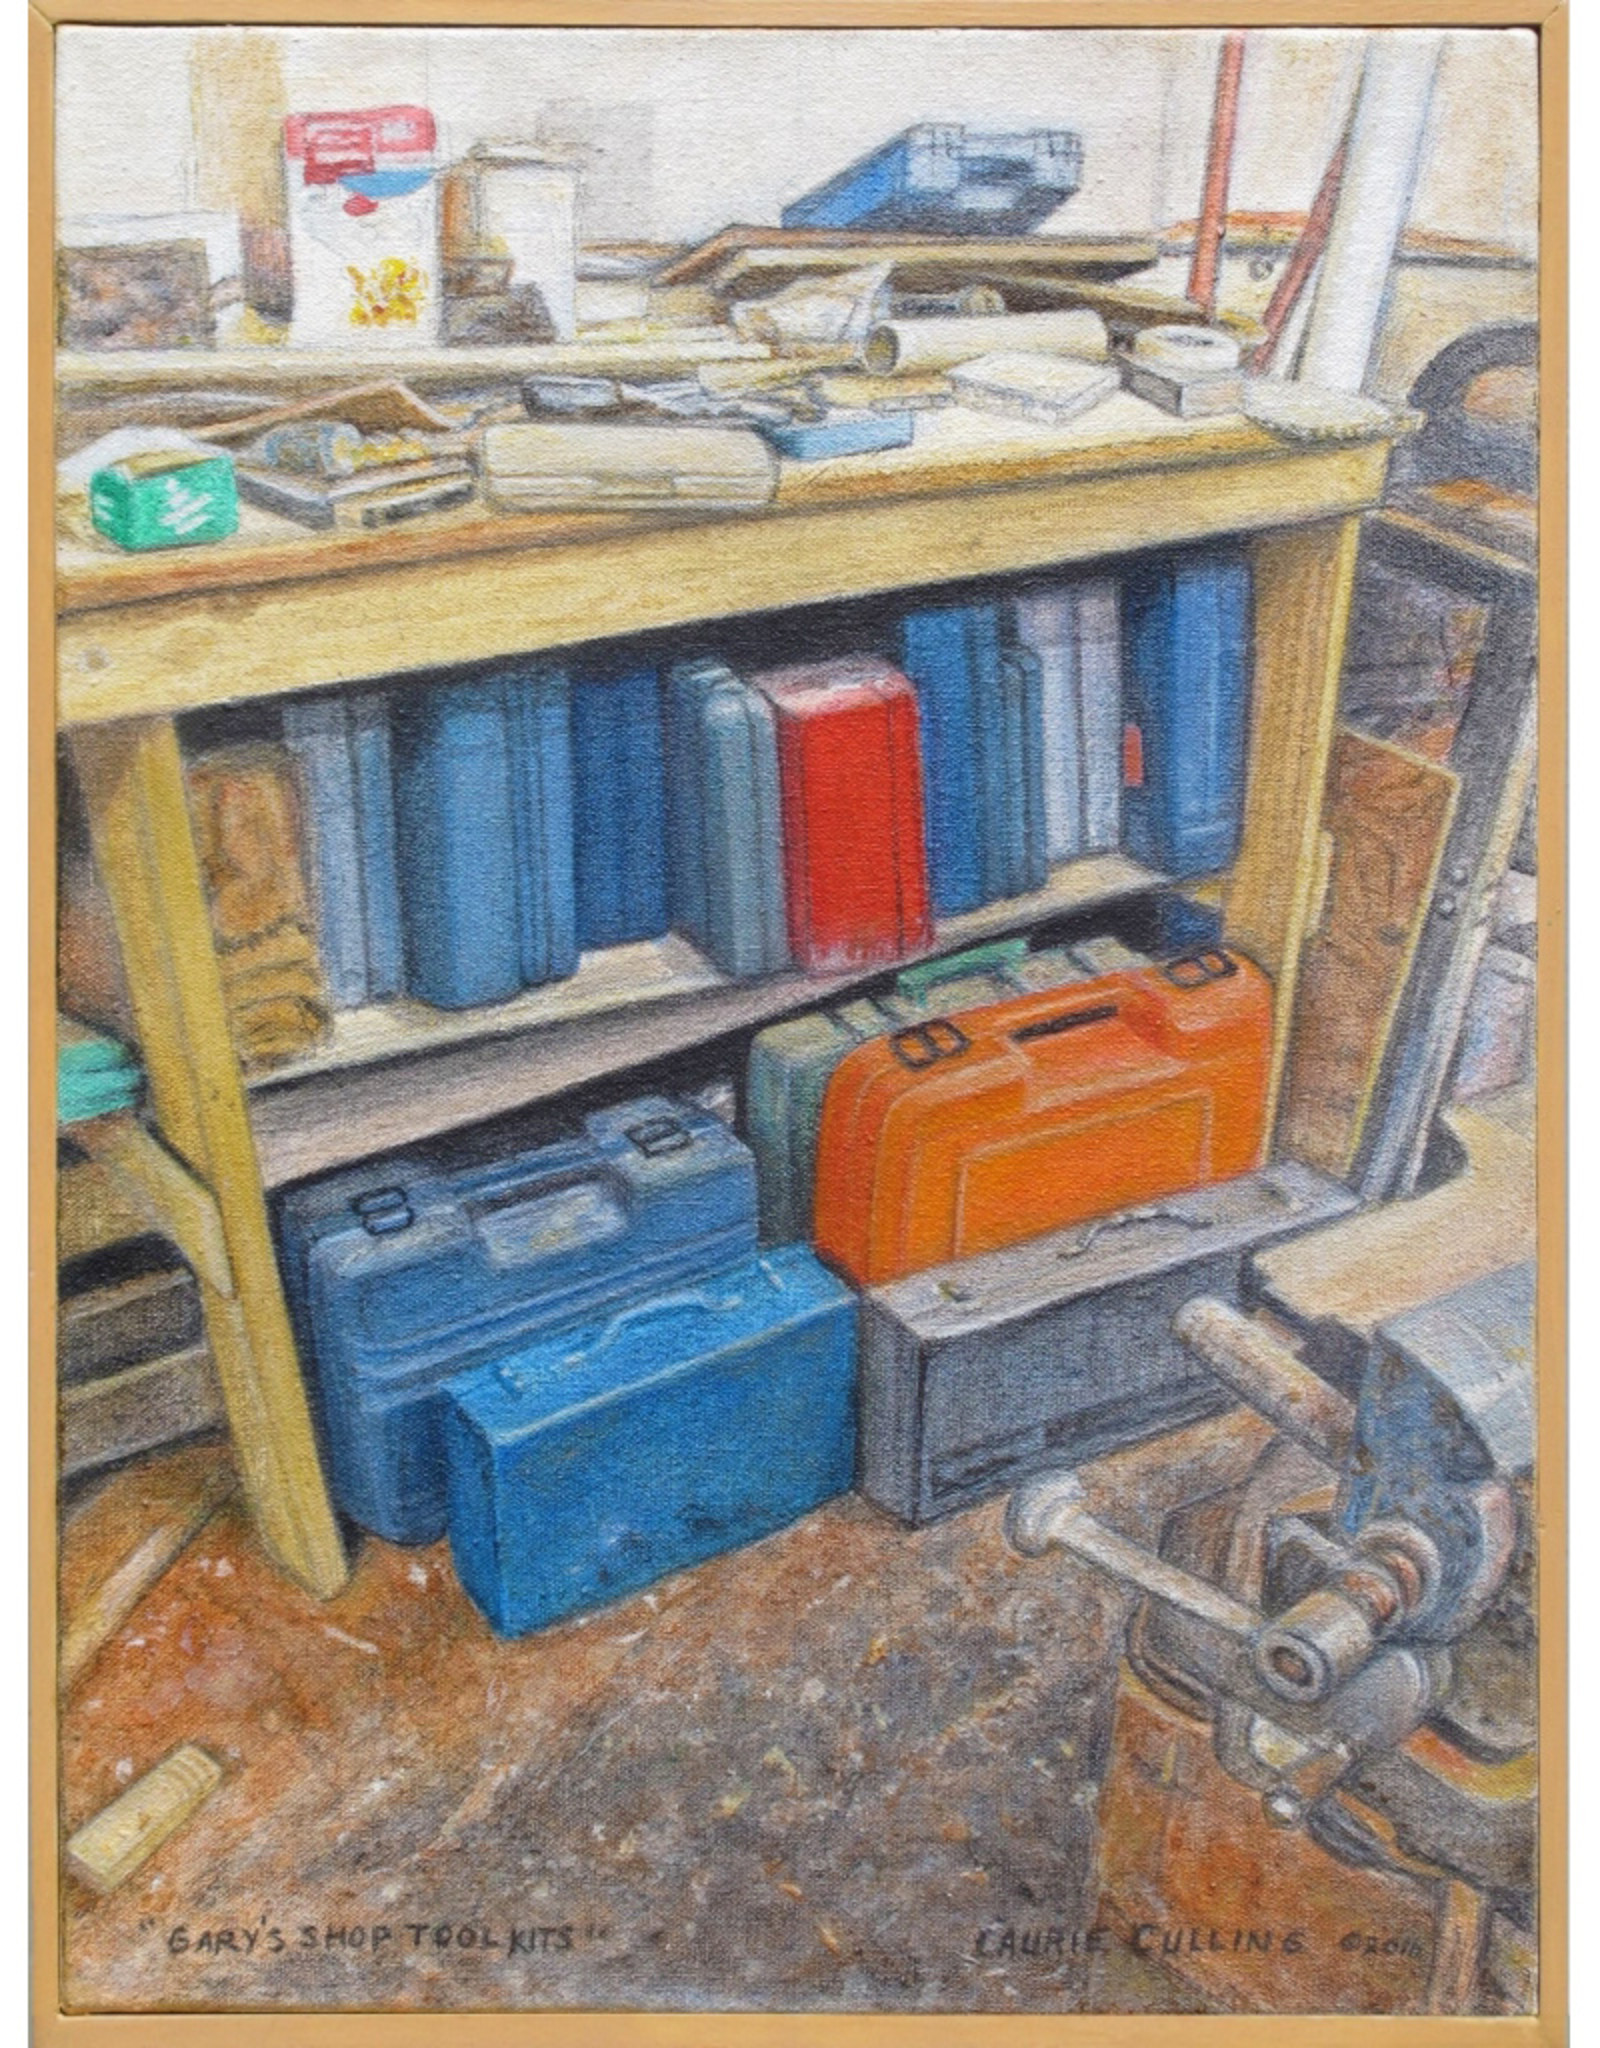 Laurie Culling Gary's Shop Tool Kits by Laurie Culling